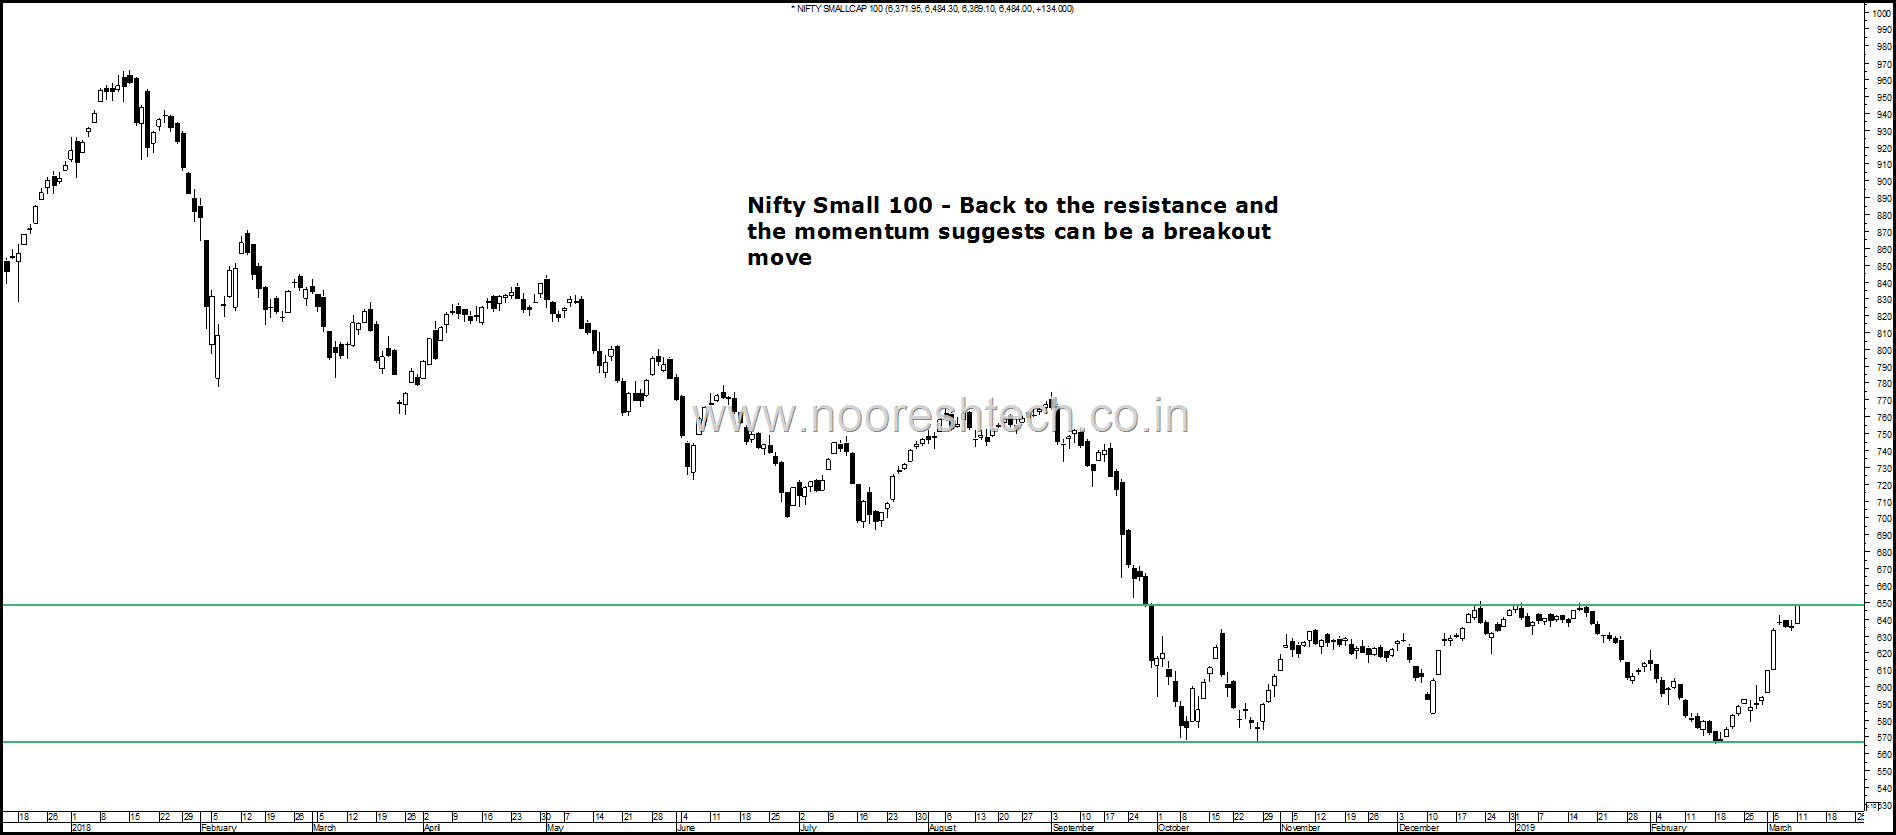 Nifty Small Breakout